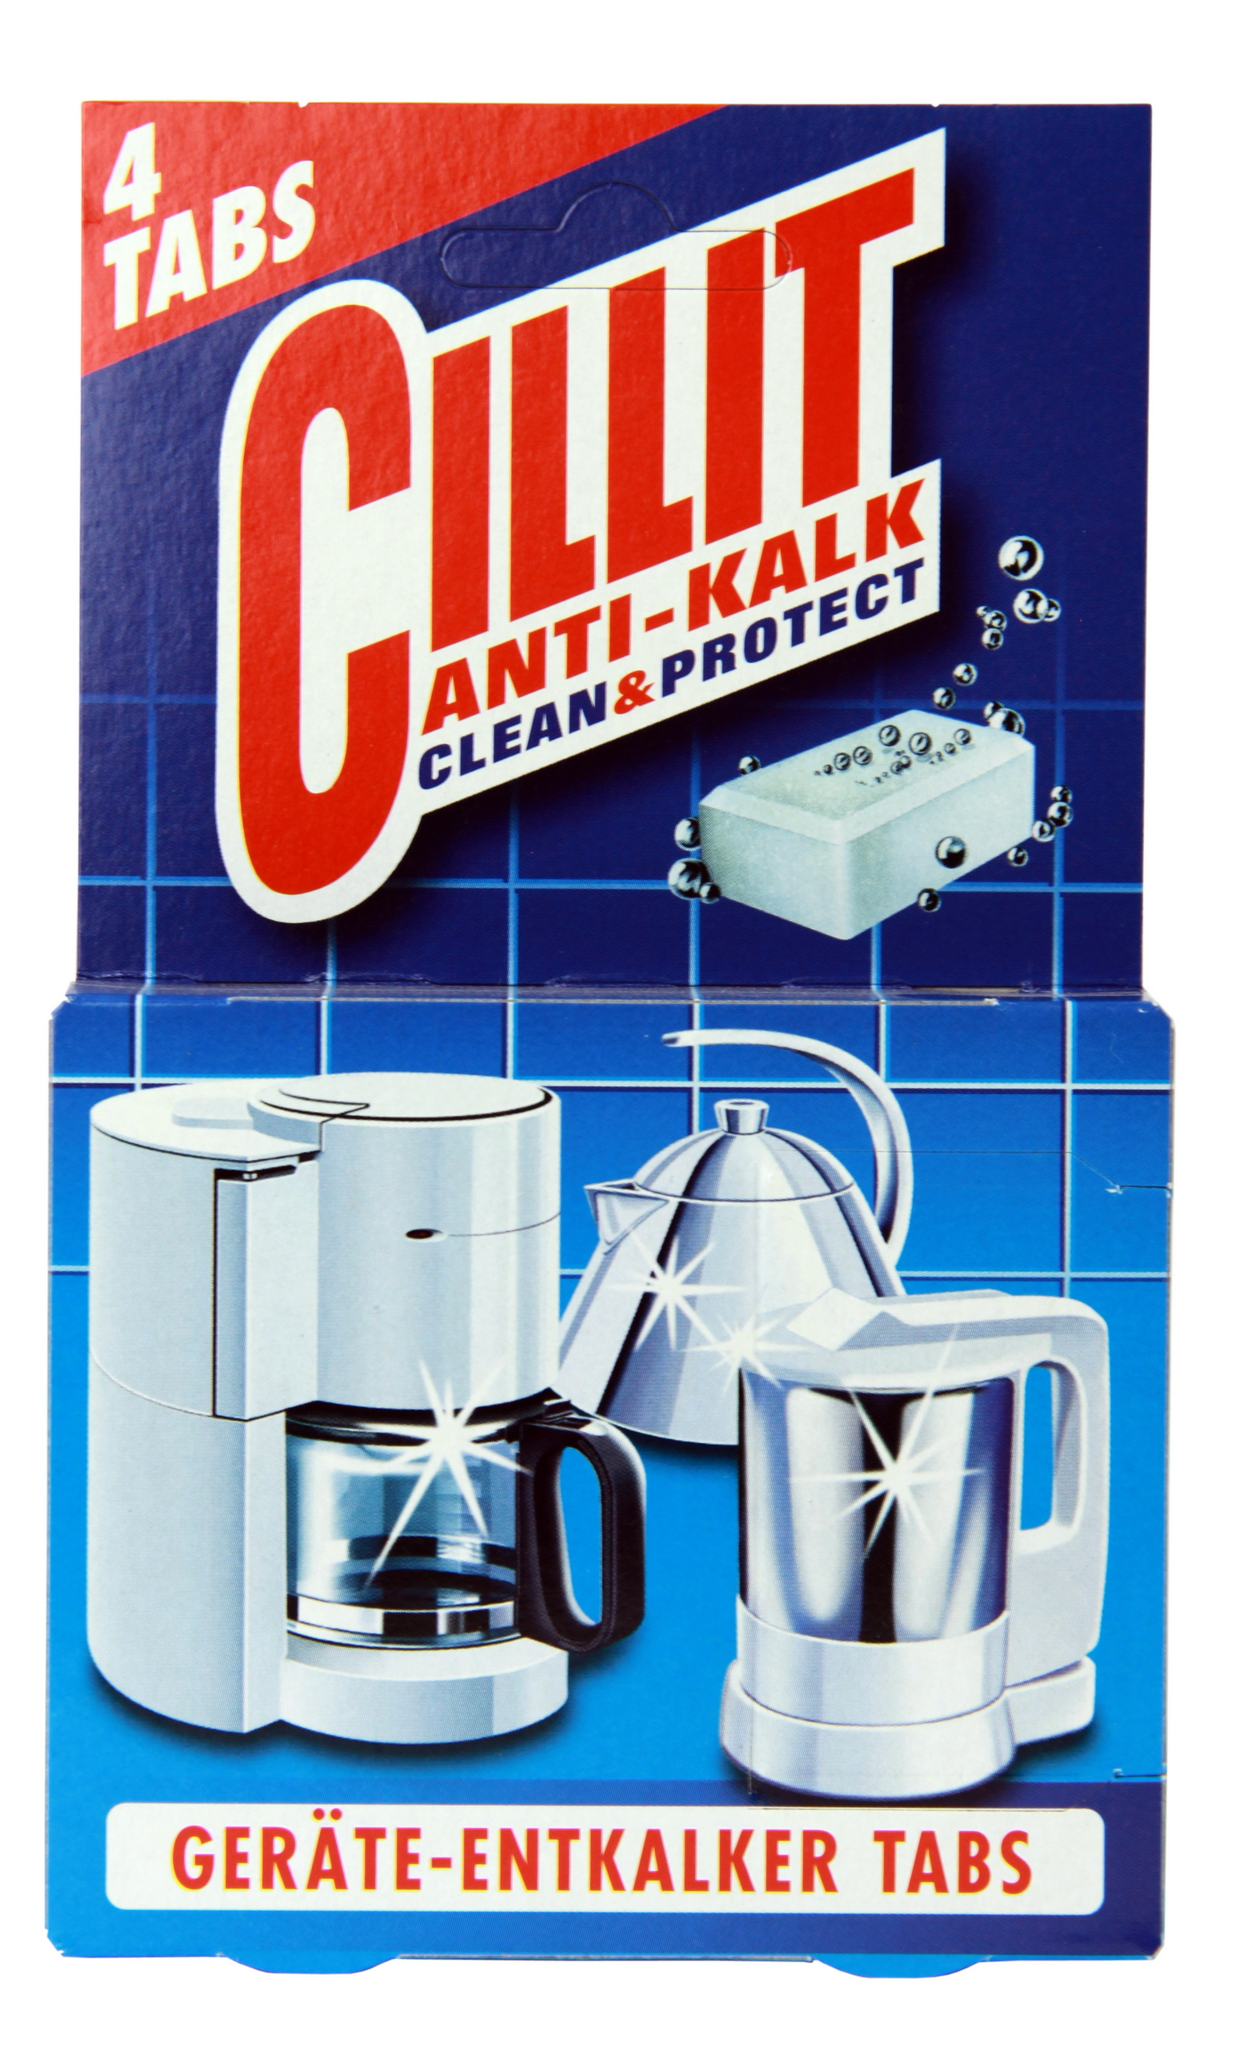 Cillit Anti Kalk Clean&Protect 4 Tabs